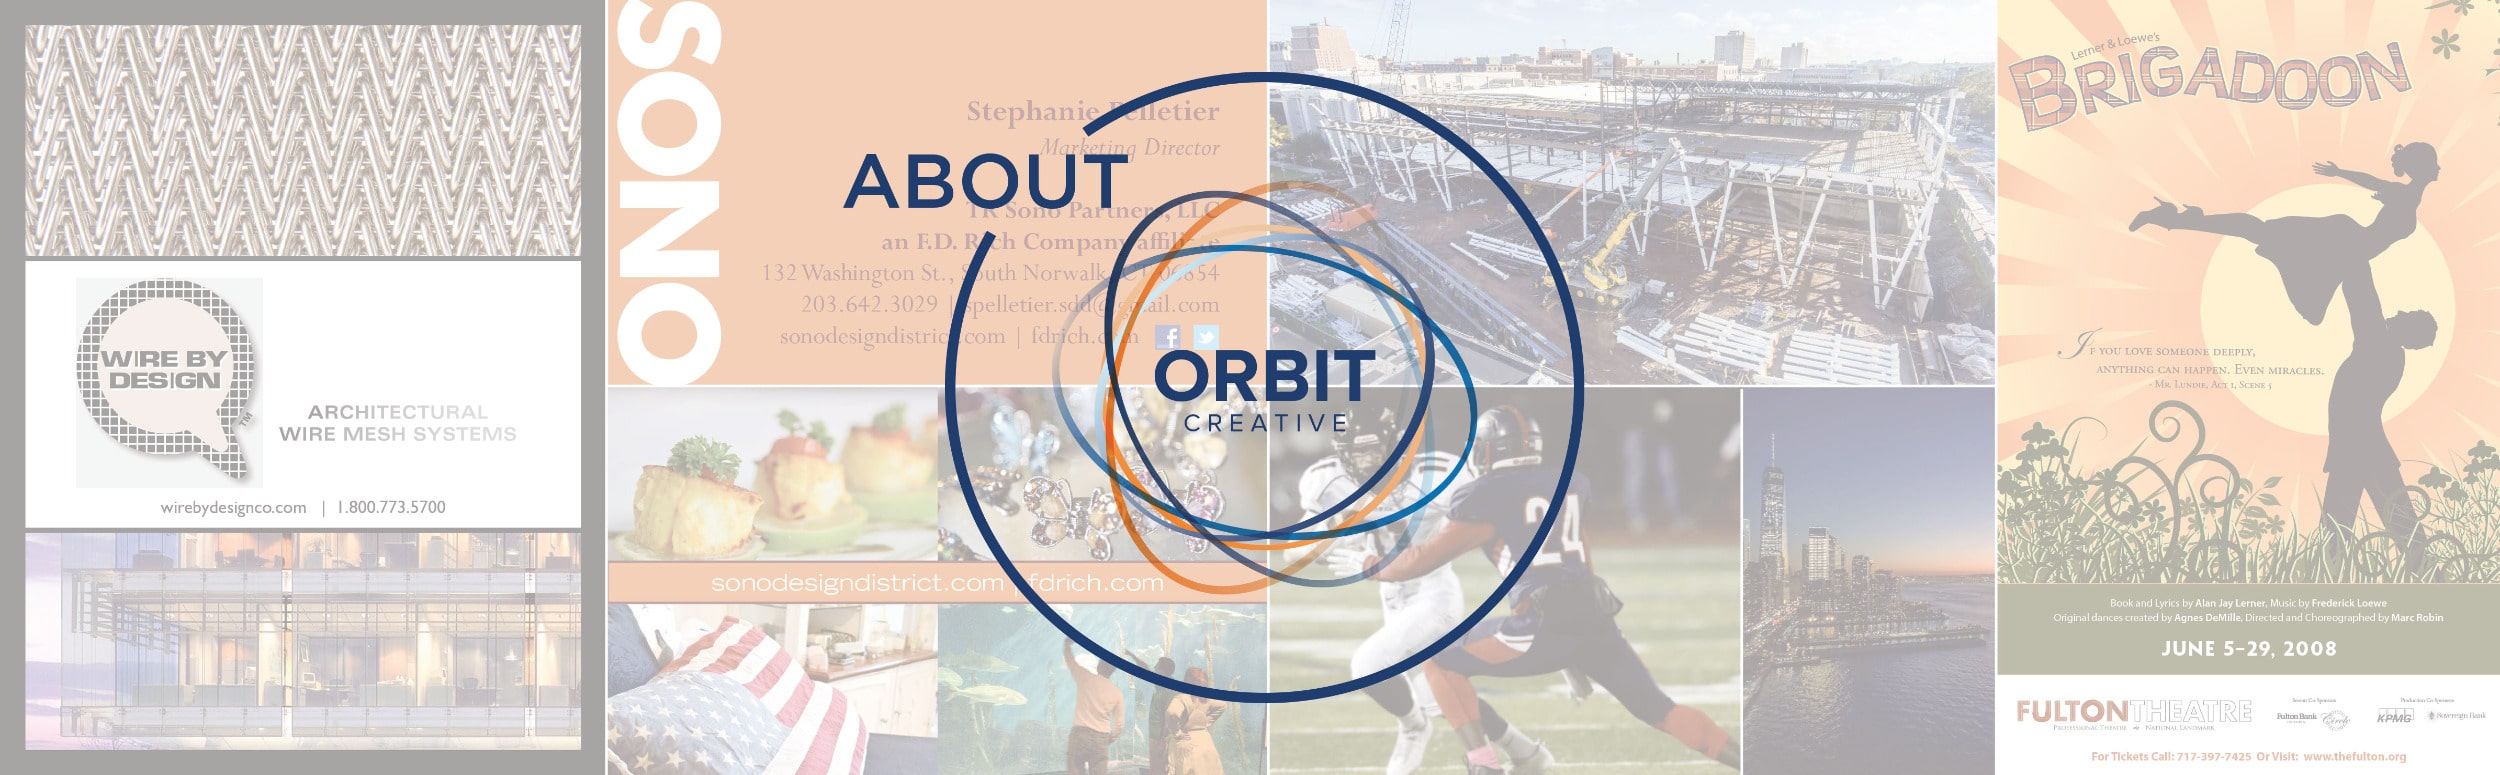 Orbit Creative About Us